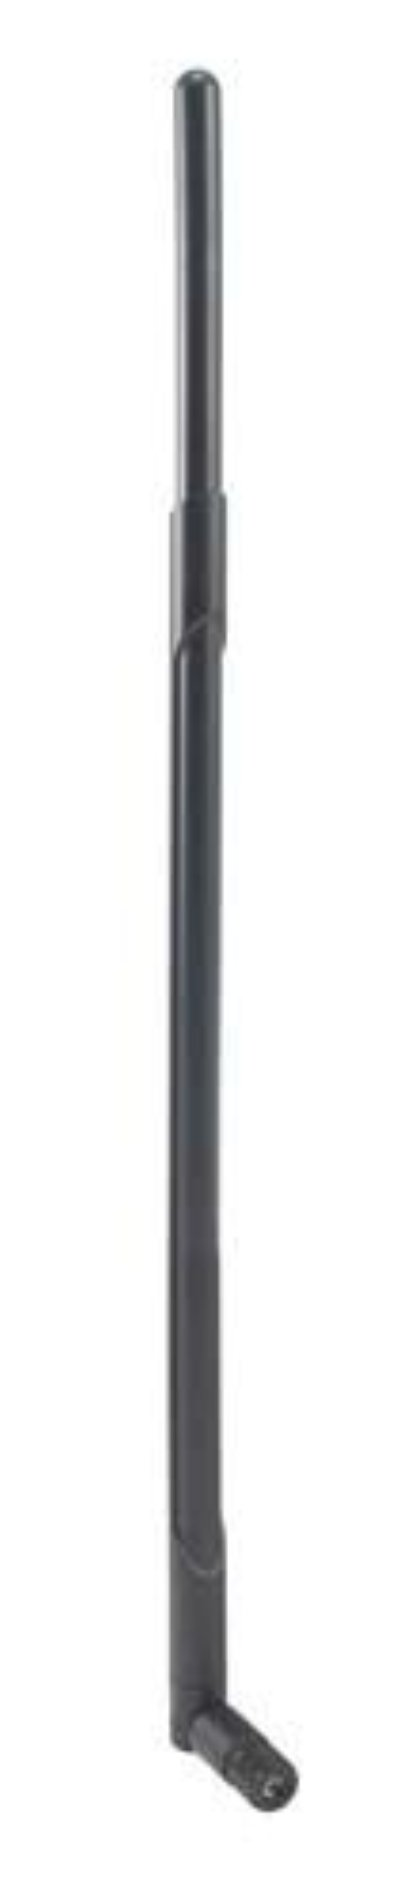 2.4 GHz 9 dBi Rubber Duck Antenna - SMA Male